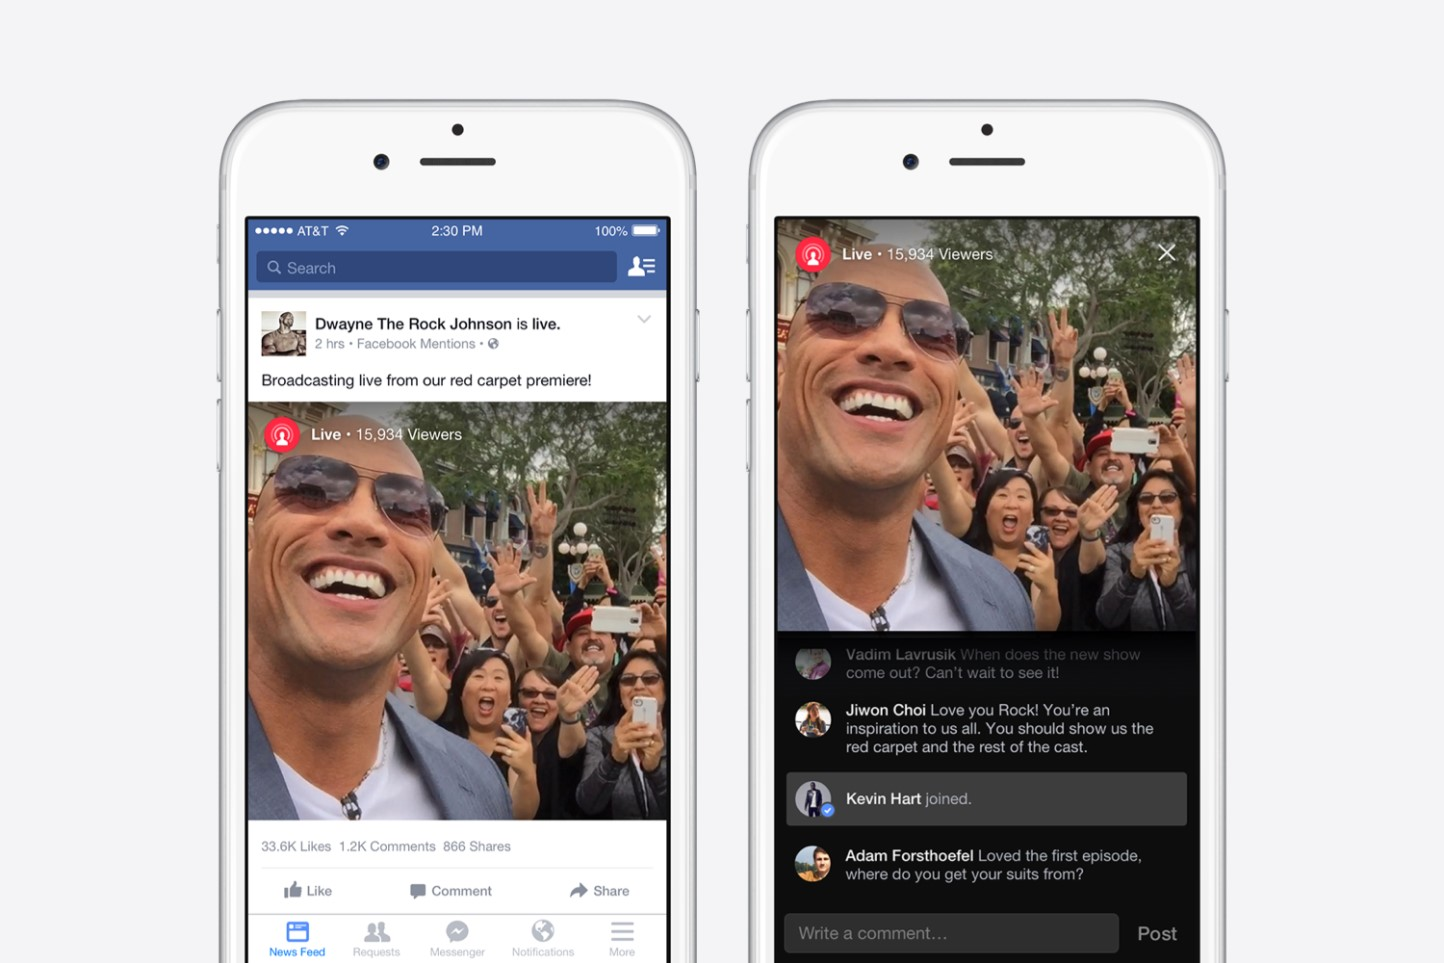 Marketing Matters: Facebook launches VIP live-streaming